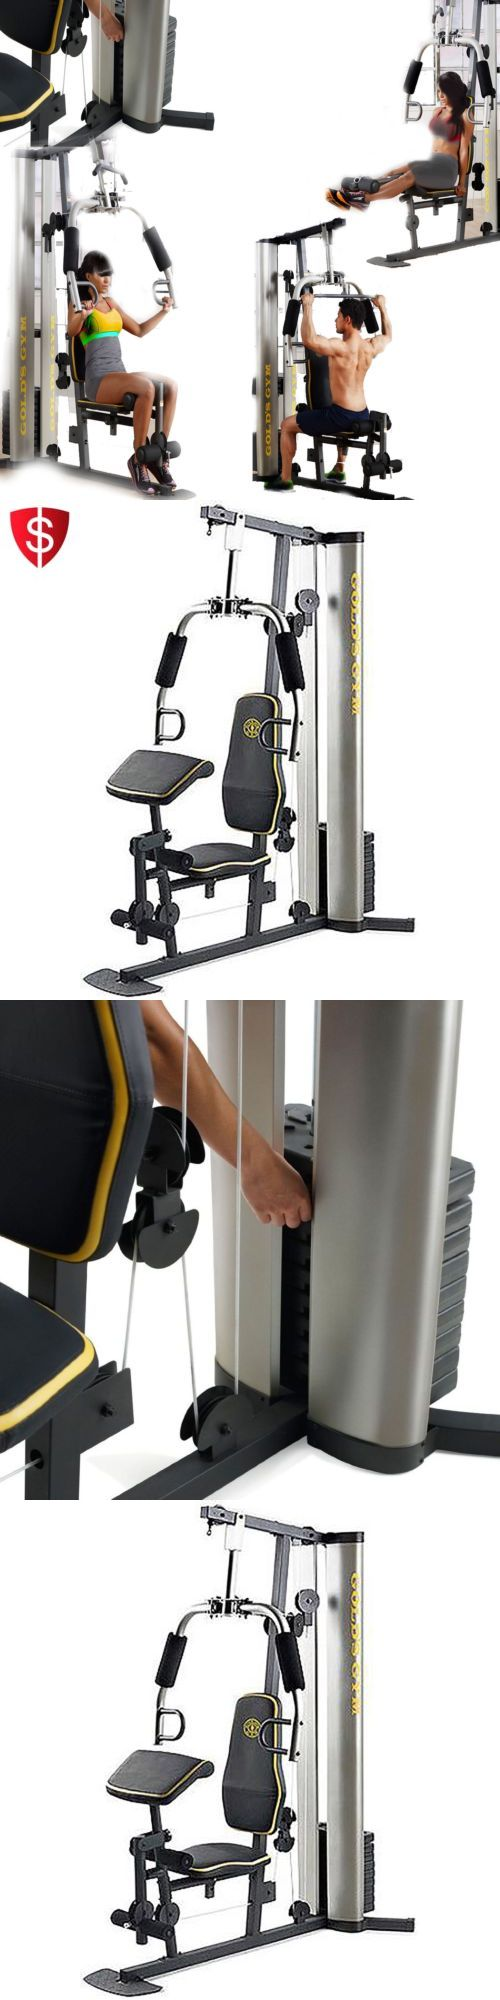 Home Gyms 158923: Gym System Strength Training Home Exercise Machine Workout Equipment -> BUY IT NOW ONLY: $325.51 on eBay!